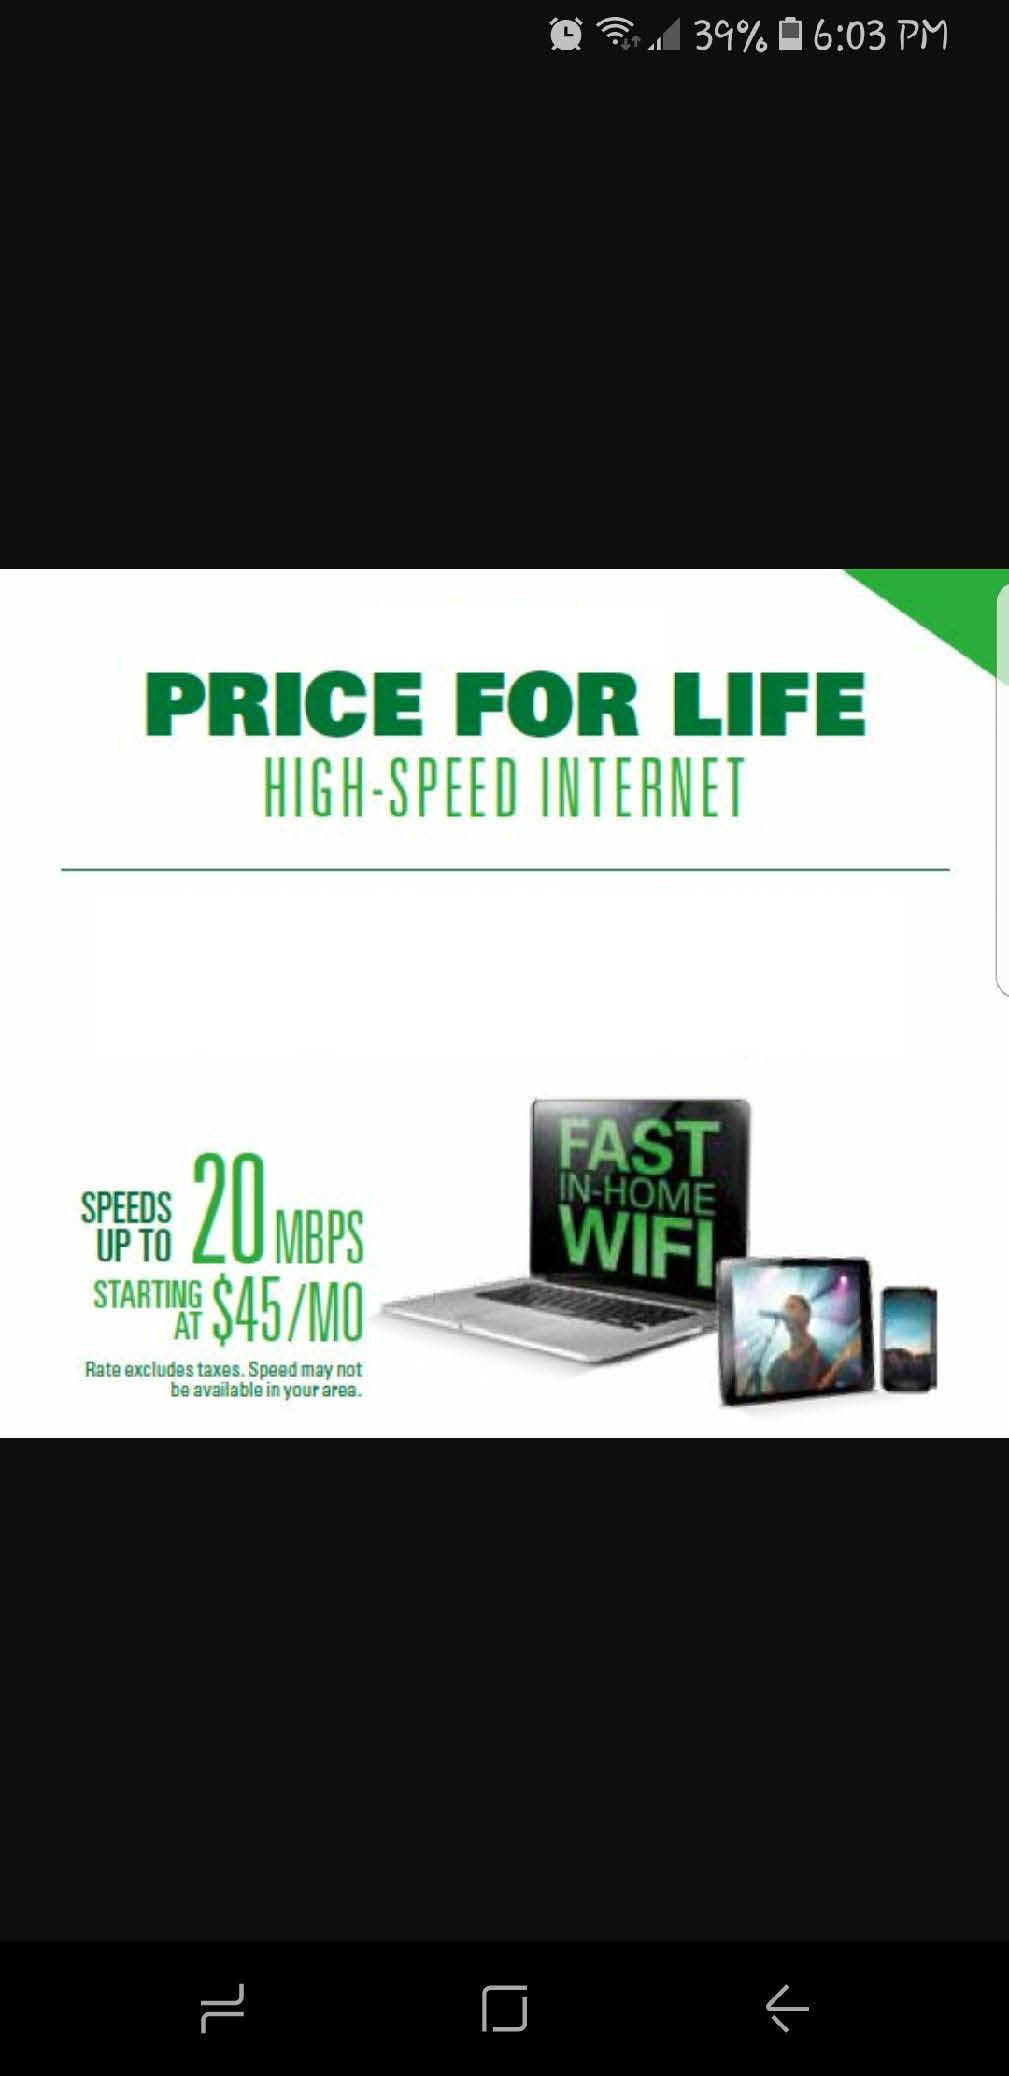 New Price for Life